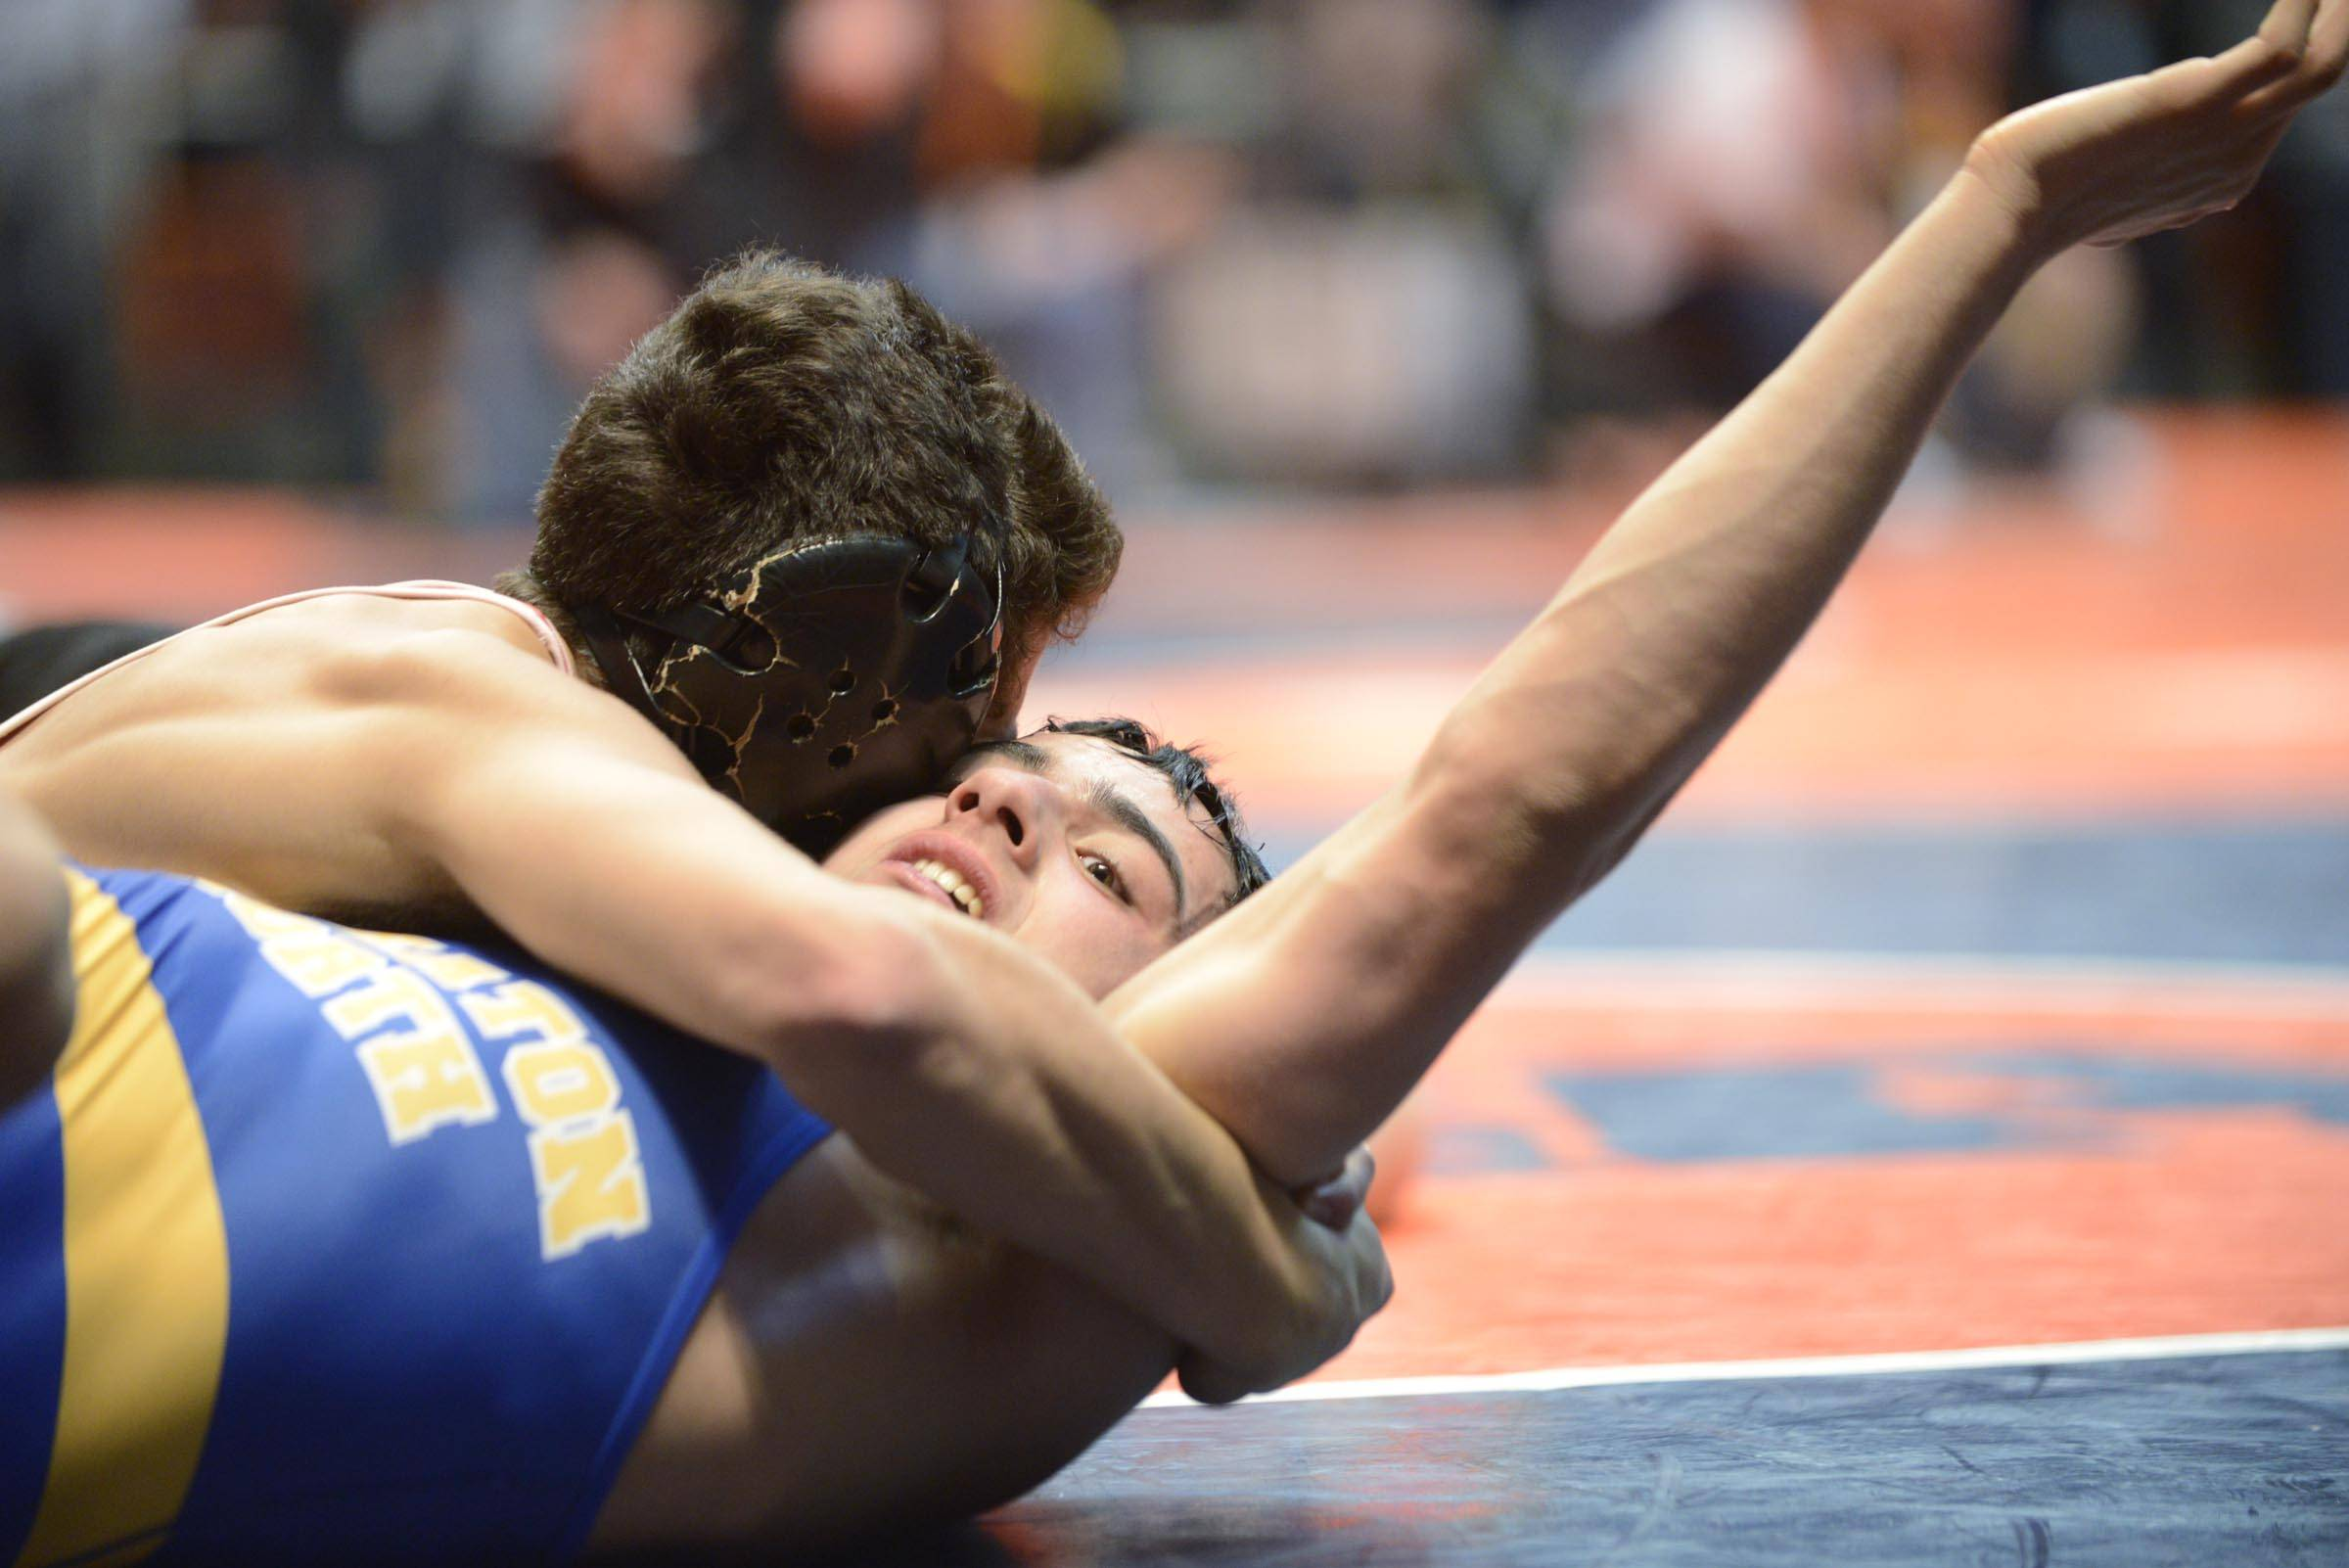 Johnny Jimenez of Marmion Academy pins Dylan Thurston of Wheaton North Friday in the 126-pound weight class semifinals of the wrestling IHSA Class 3A state tournament at State Farm Center in Champaign.